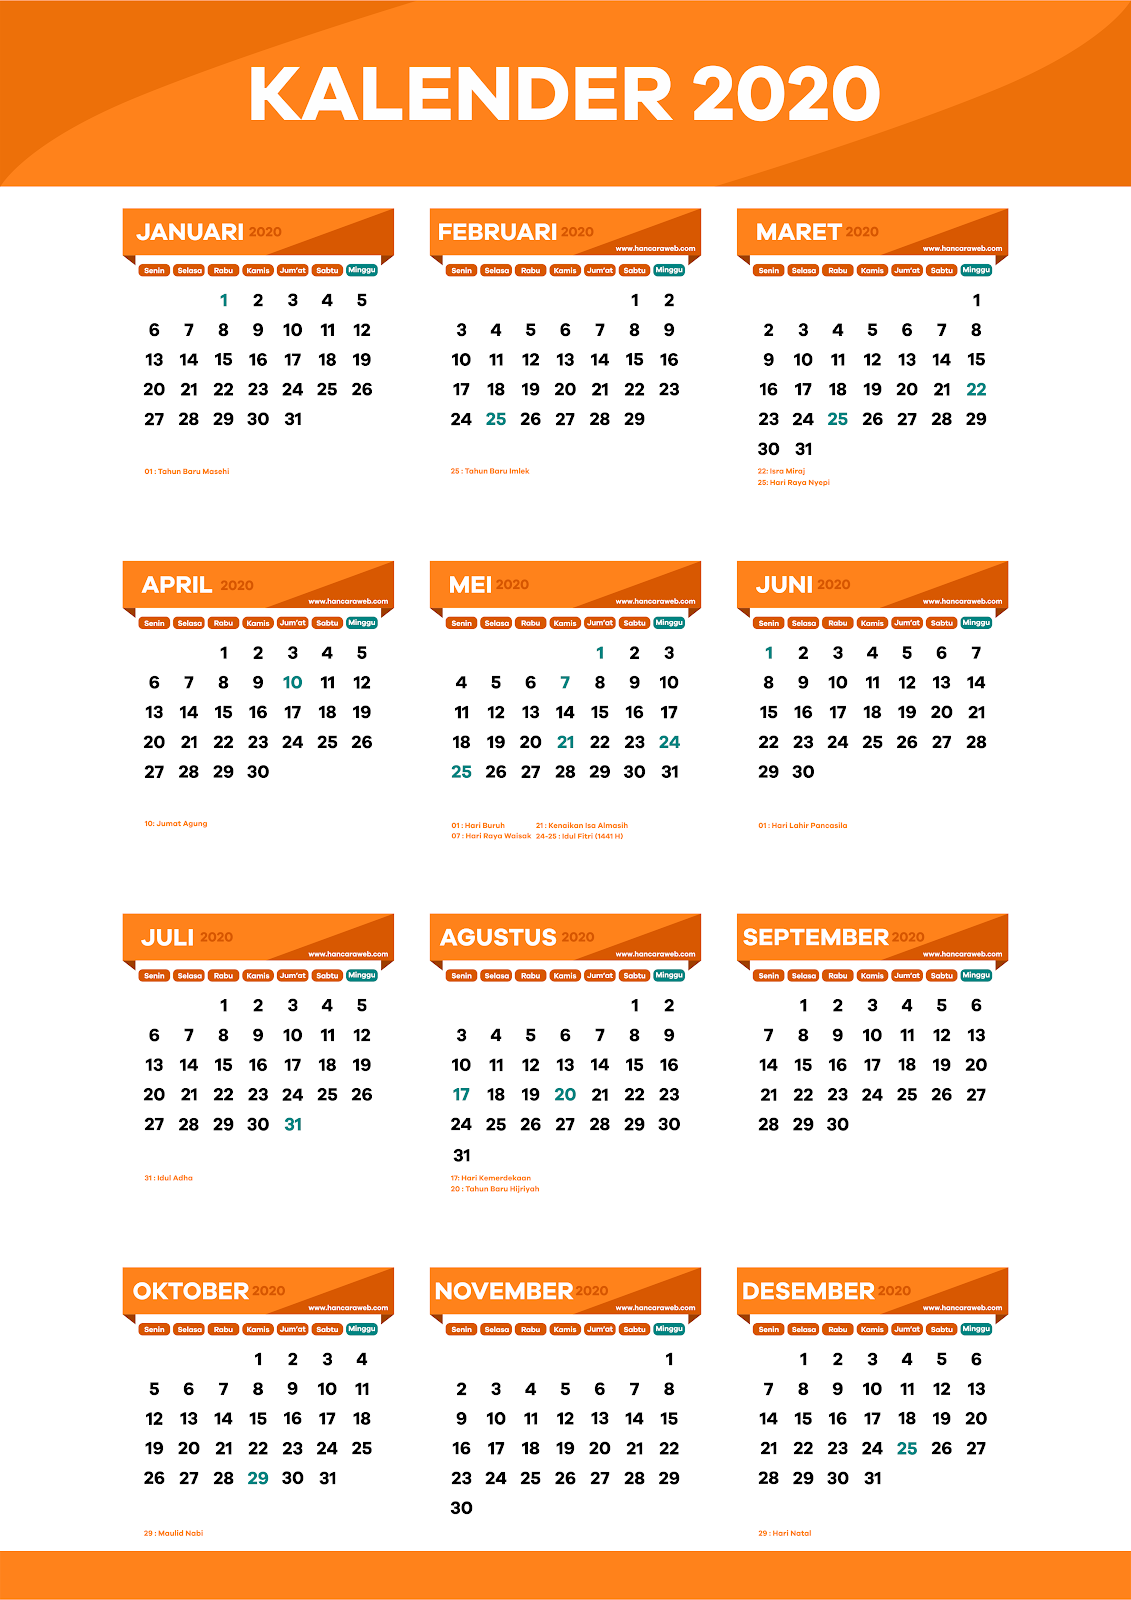 Download Kalender Indonesia 2020 Format Cdr Editable Png